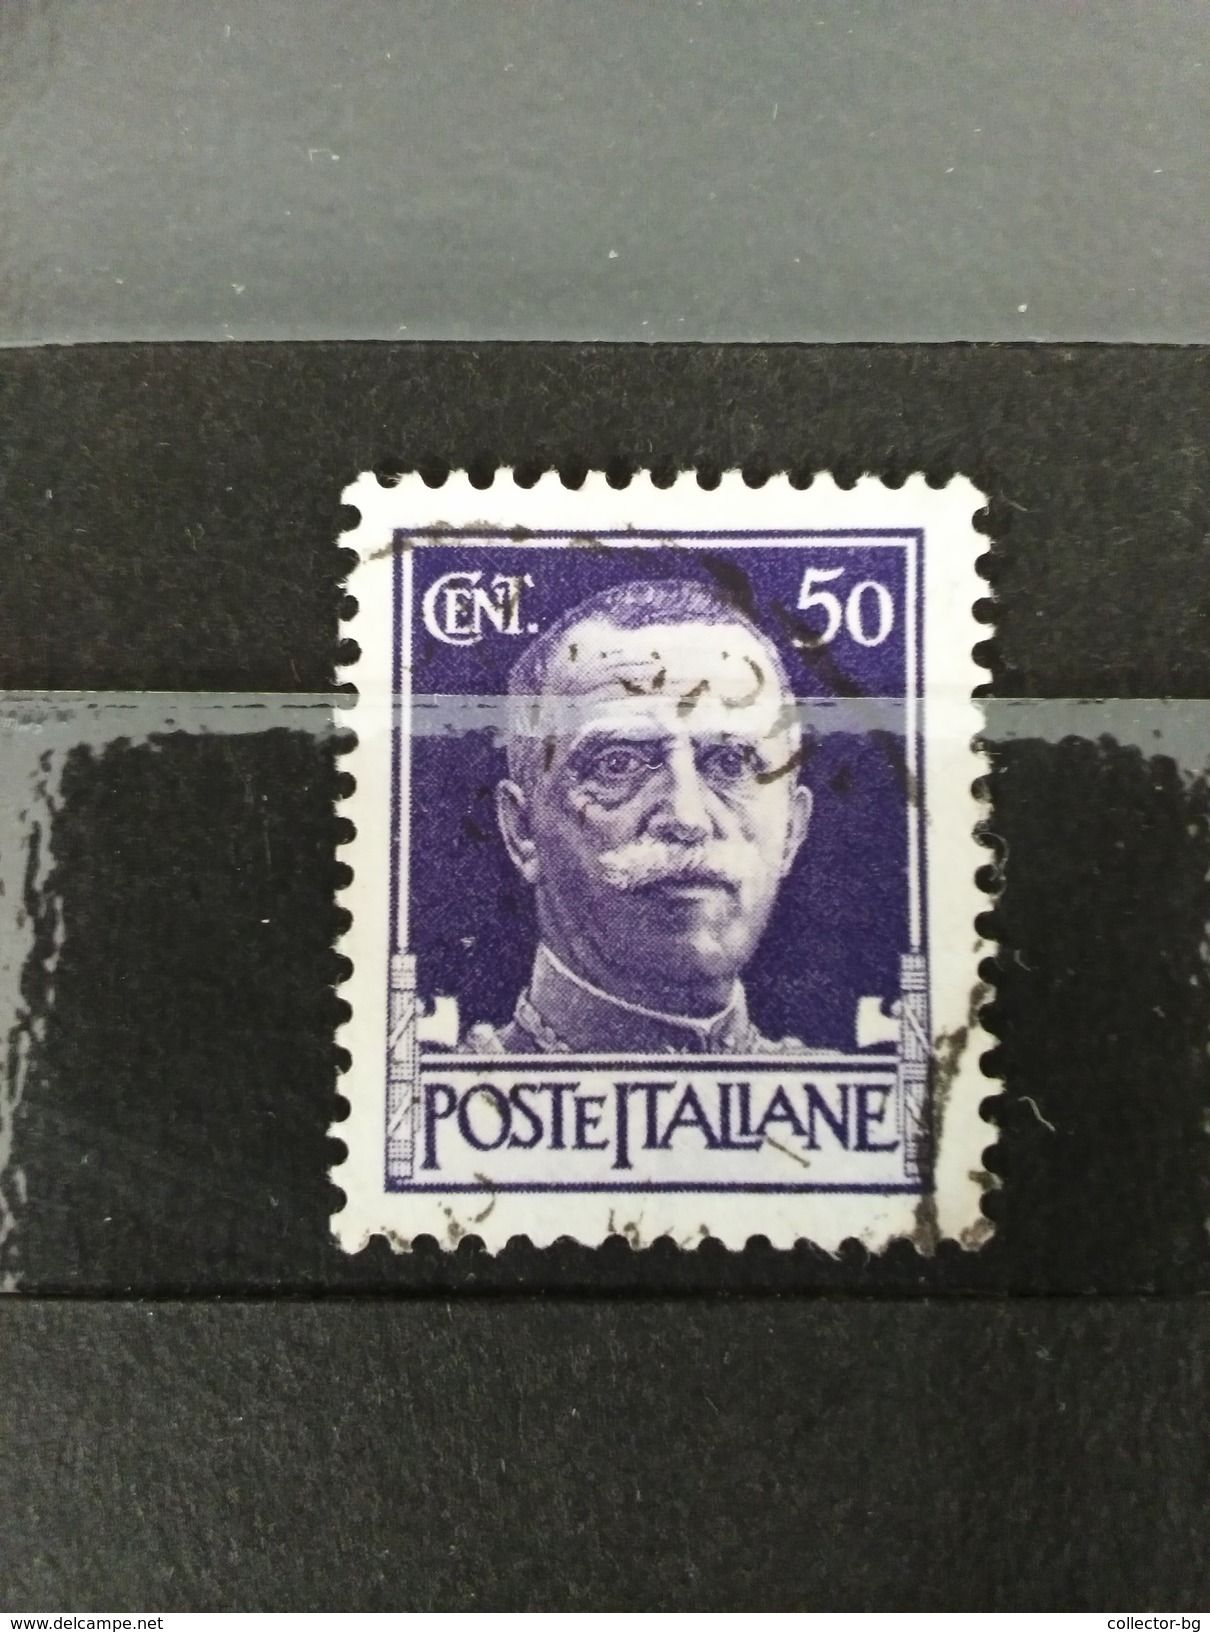 Rare 50 Cent Italy Italiane Postes Used Mint Stamp Timbre Item Number 423153029 Rare